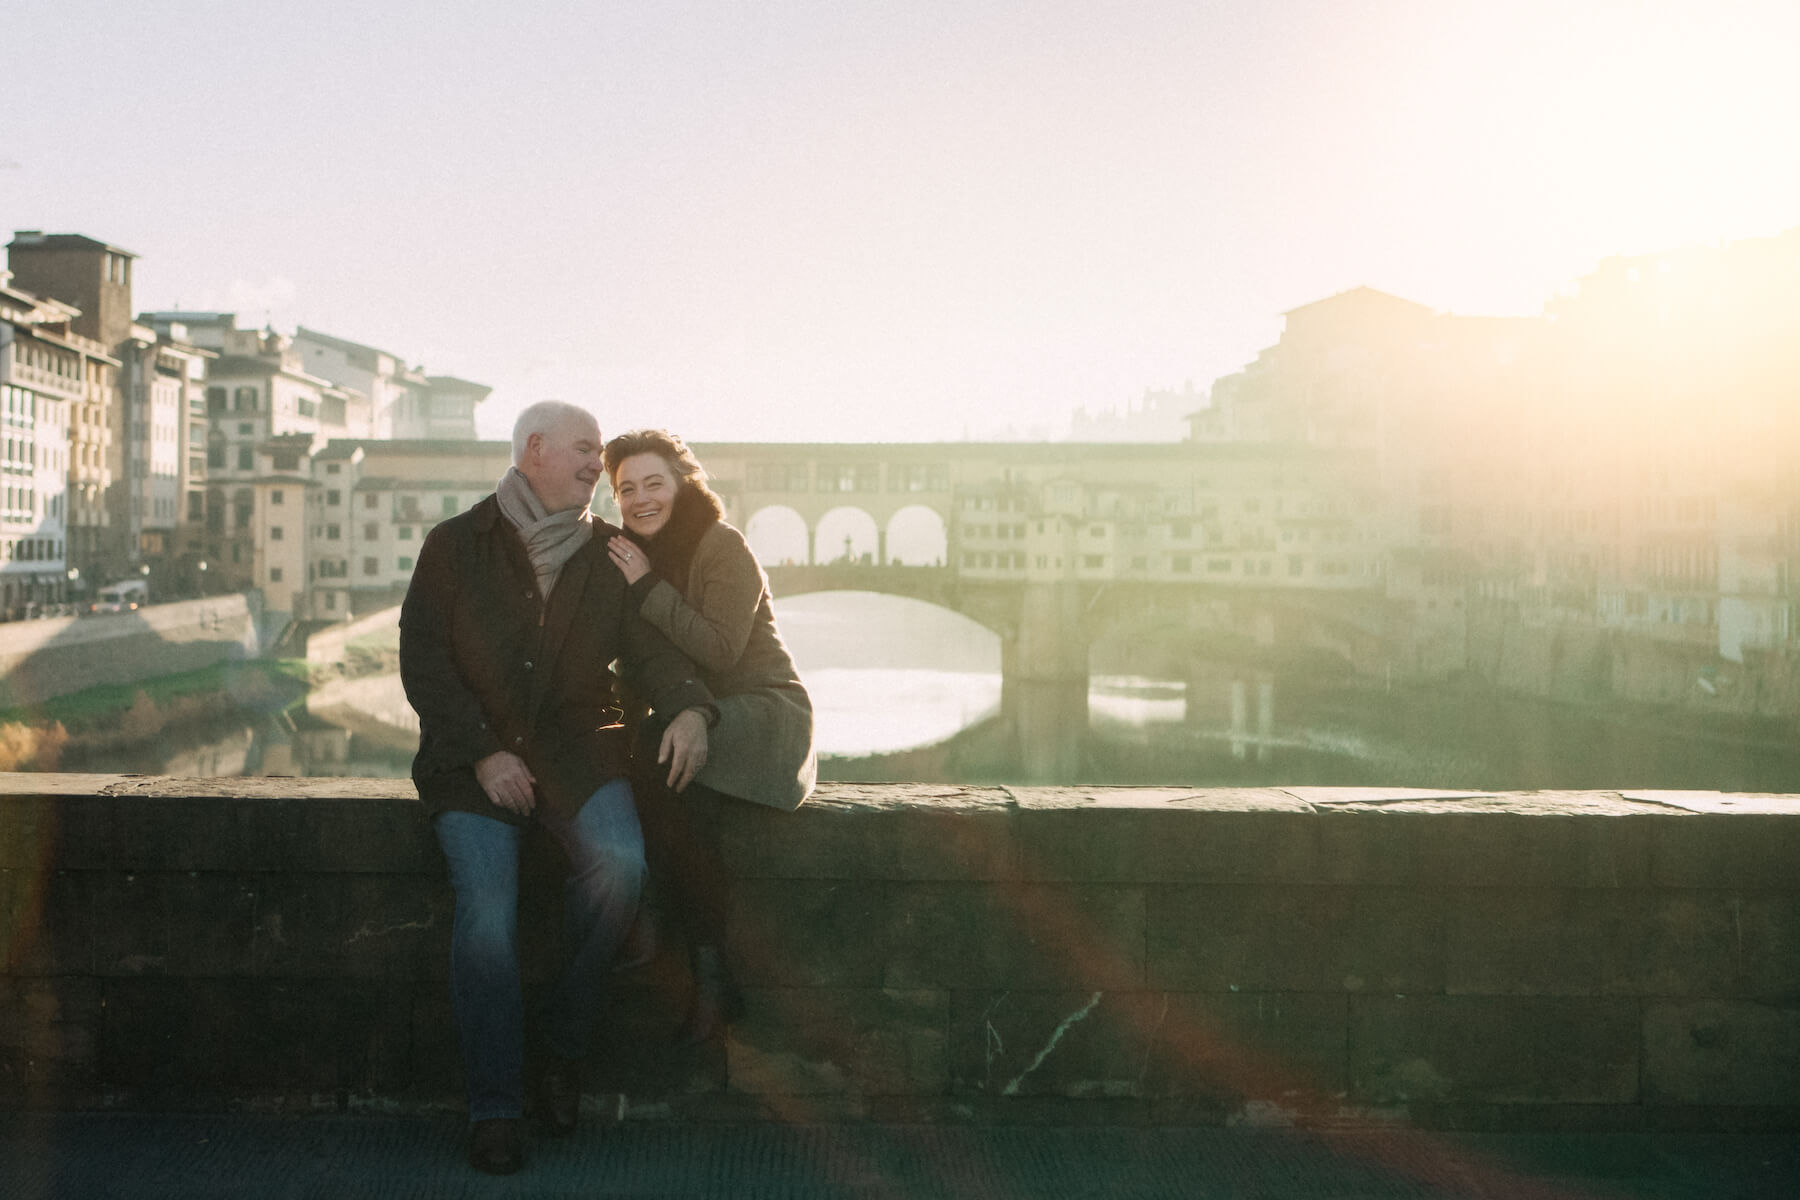 Mature couple sitting together in the winter on bridge ledge in front of Ponte Vecchio in Florence, Italy